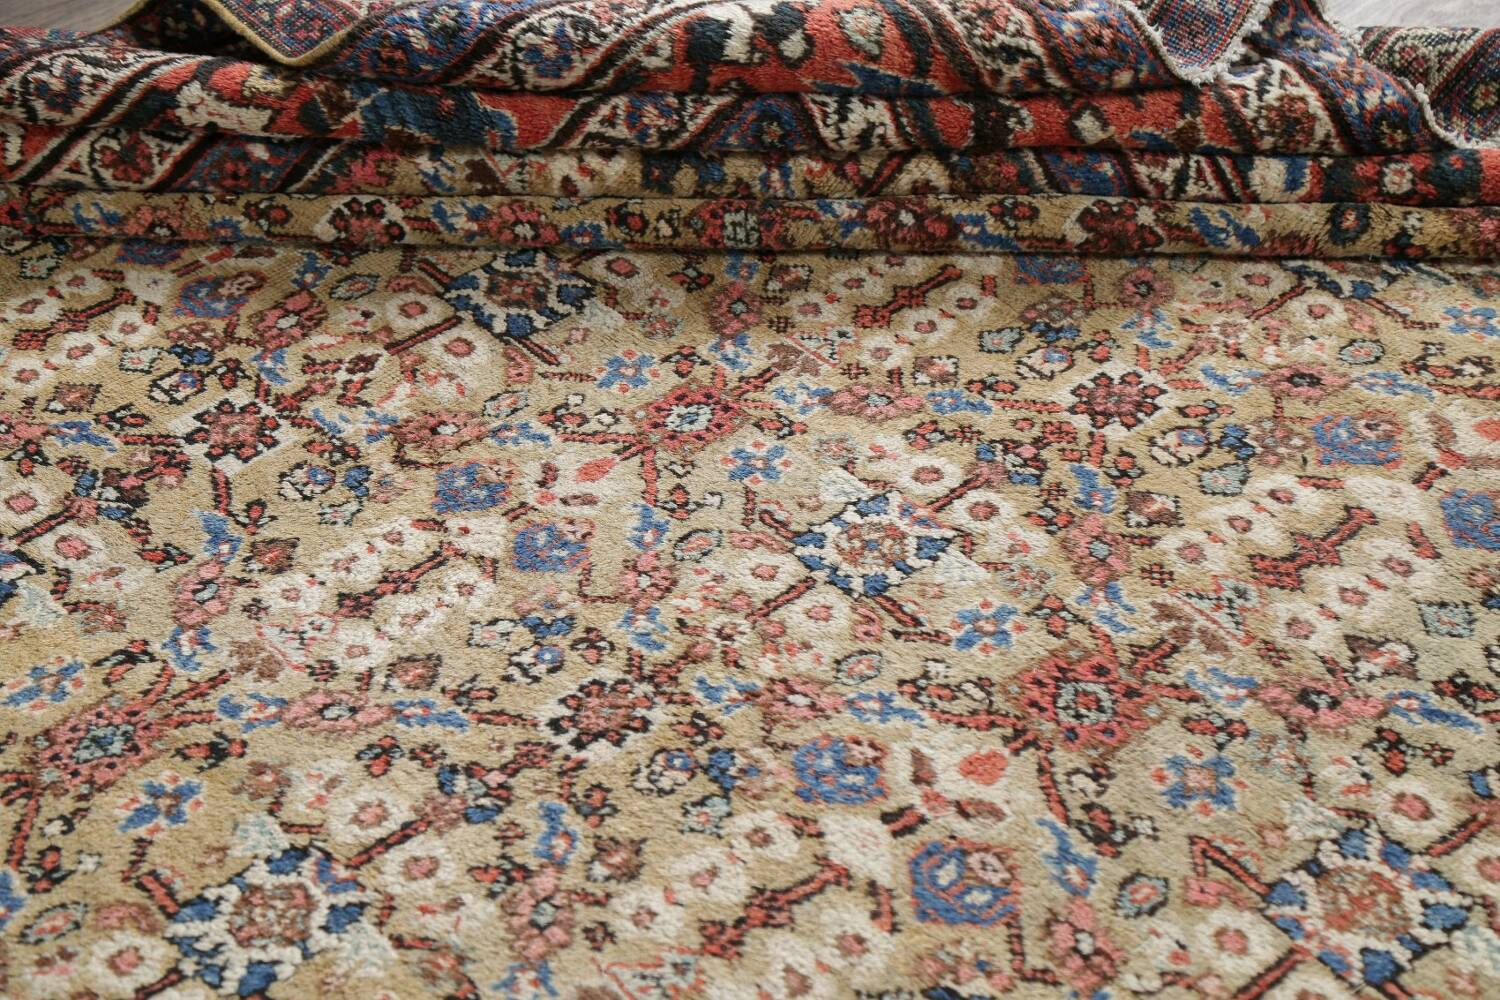 Antique Pre-1900 Sultanabad Persian Rug 13x22 Large image 19